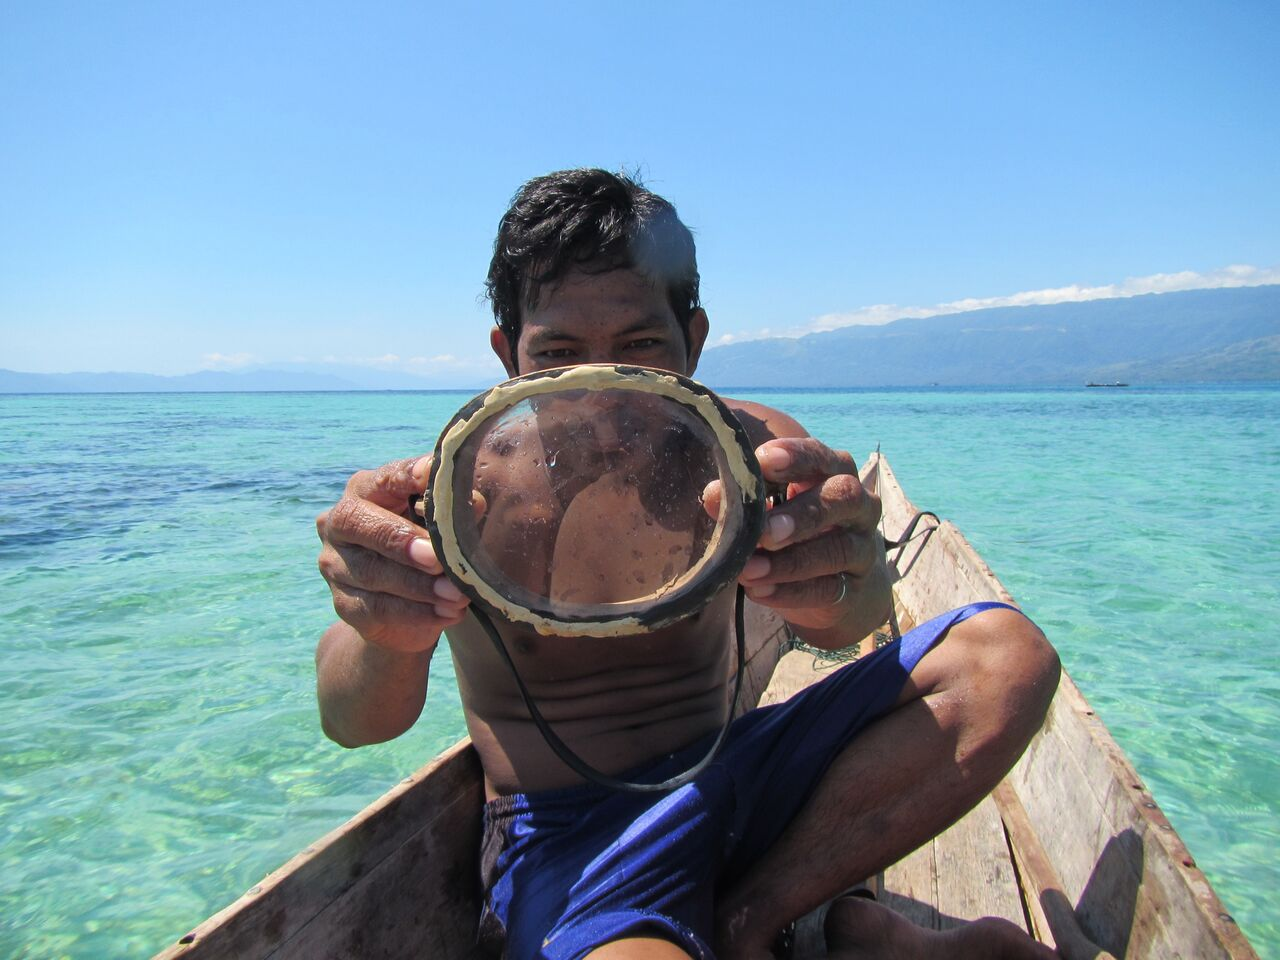 A Bajau diver shows off a traditional wooden diving mask. (Credit: Melissa Ilardo)